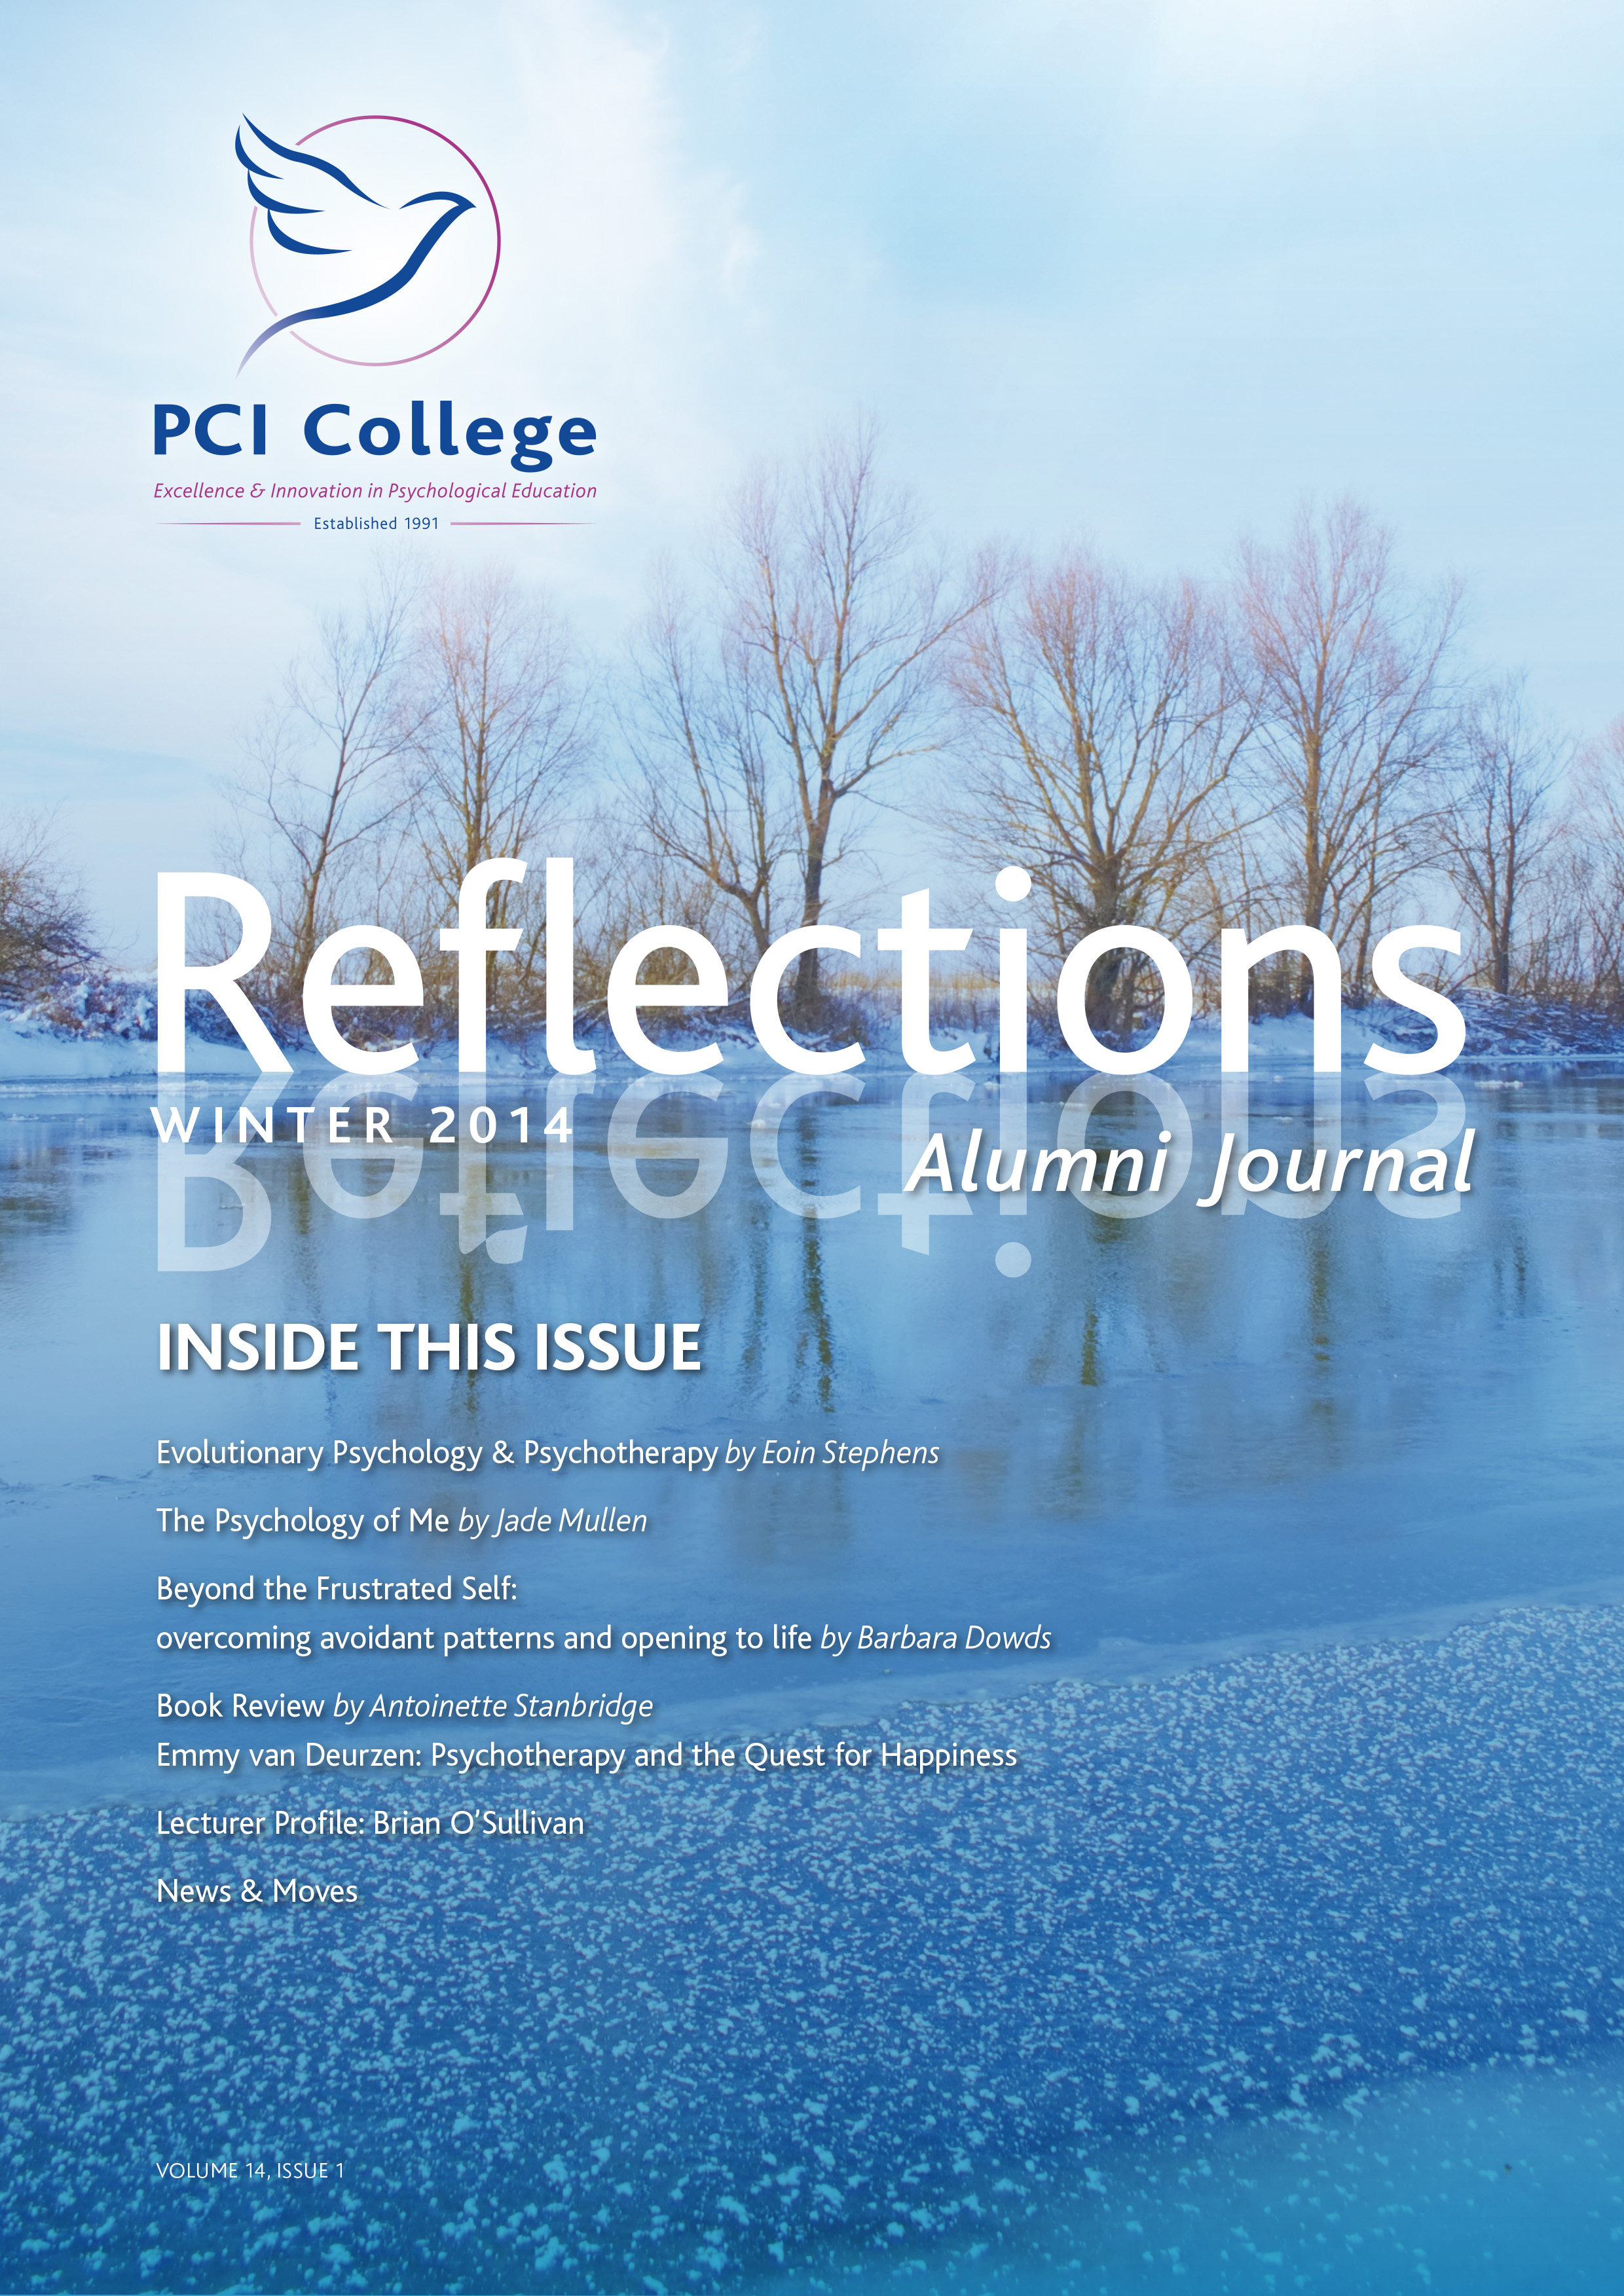 Cover of Reflections Journal Winter 2014